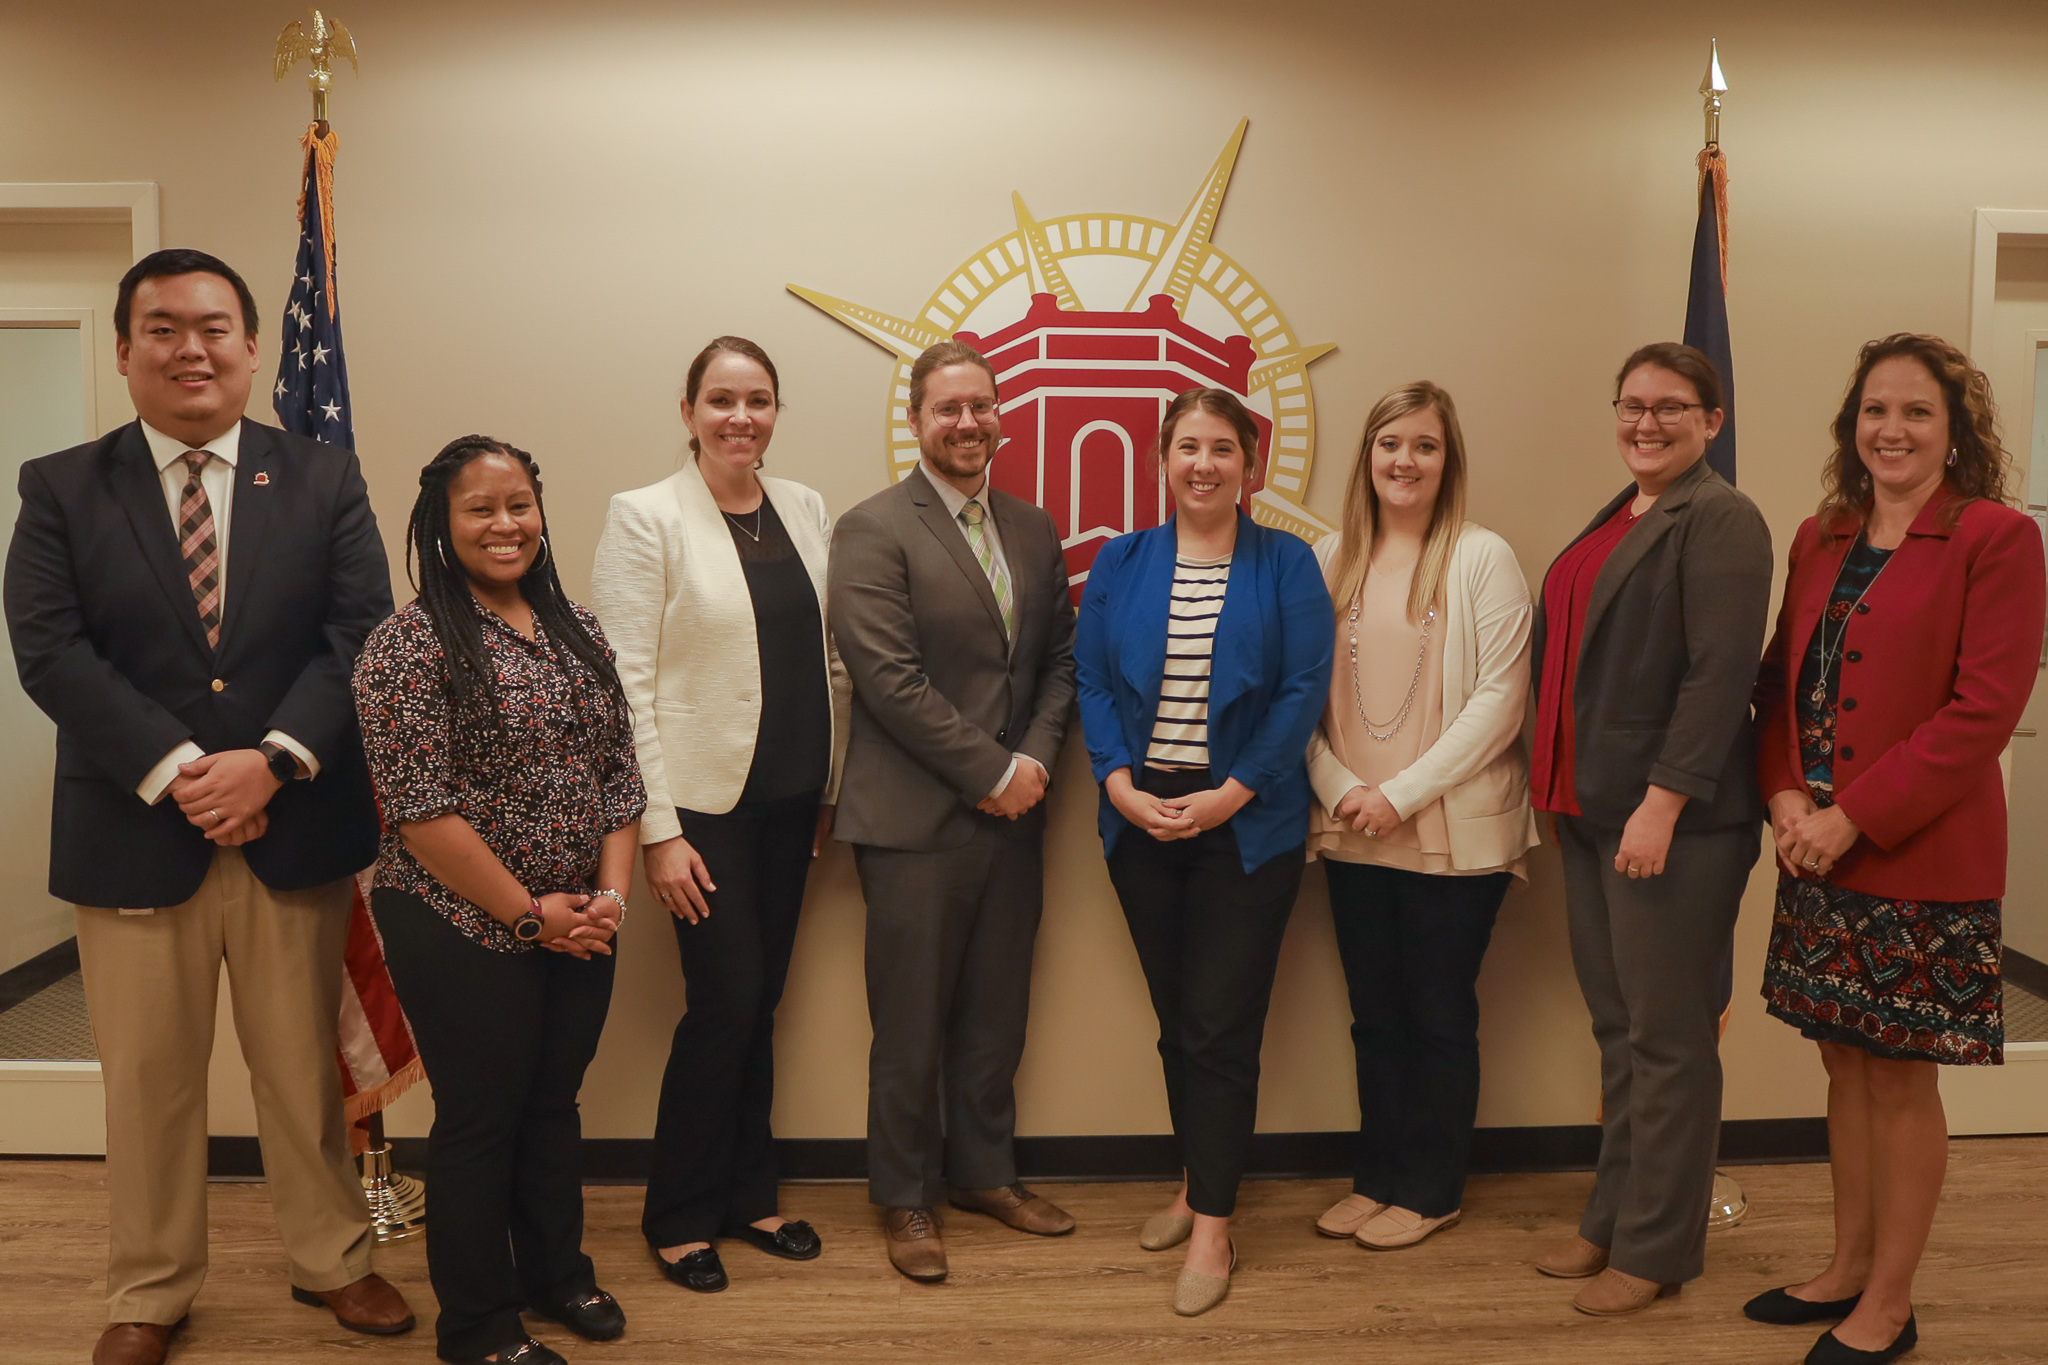 The Federal Programs and Finance departments learned a great deal from their visit with Brustein and Manasevit this week!